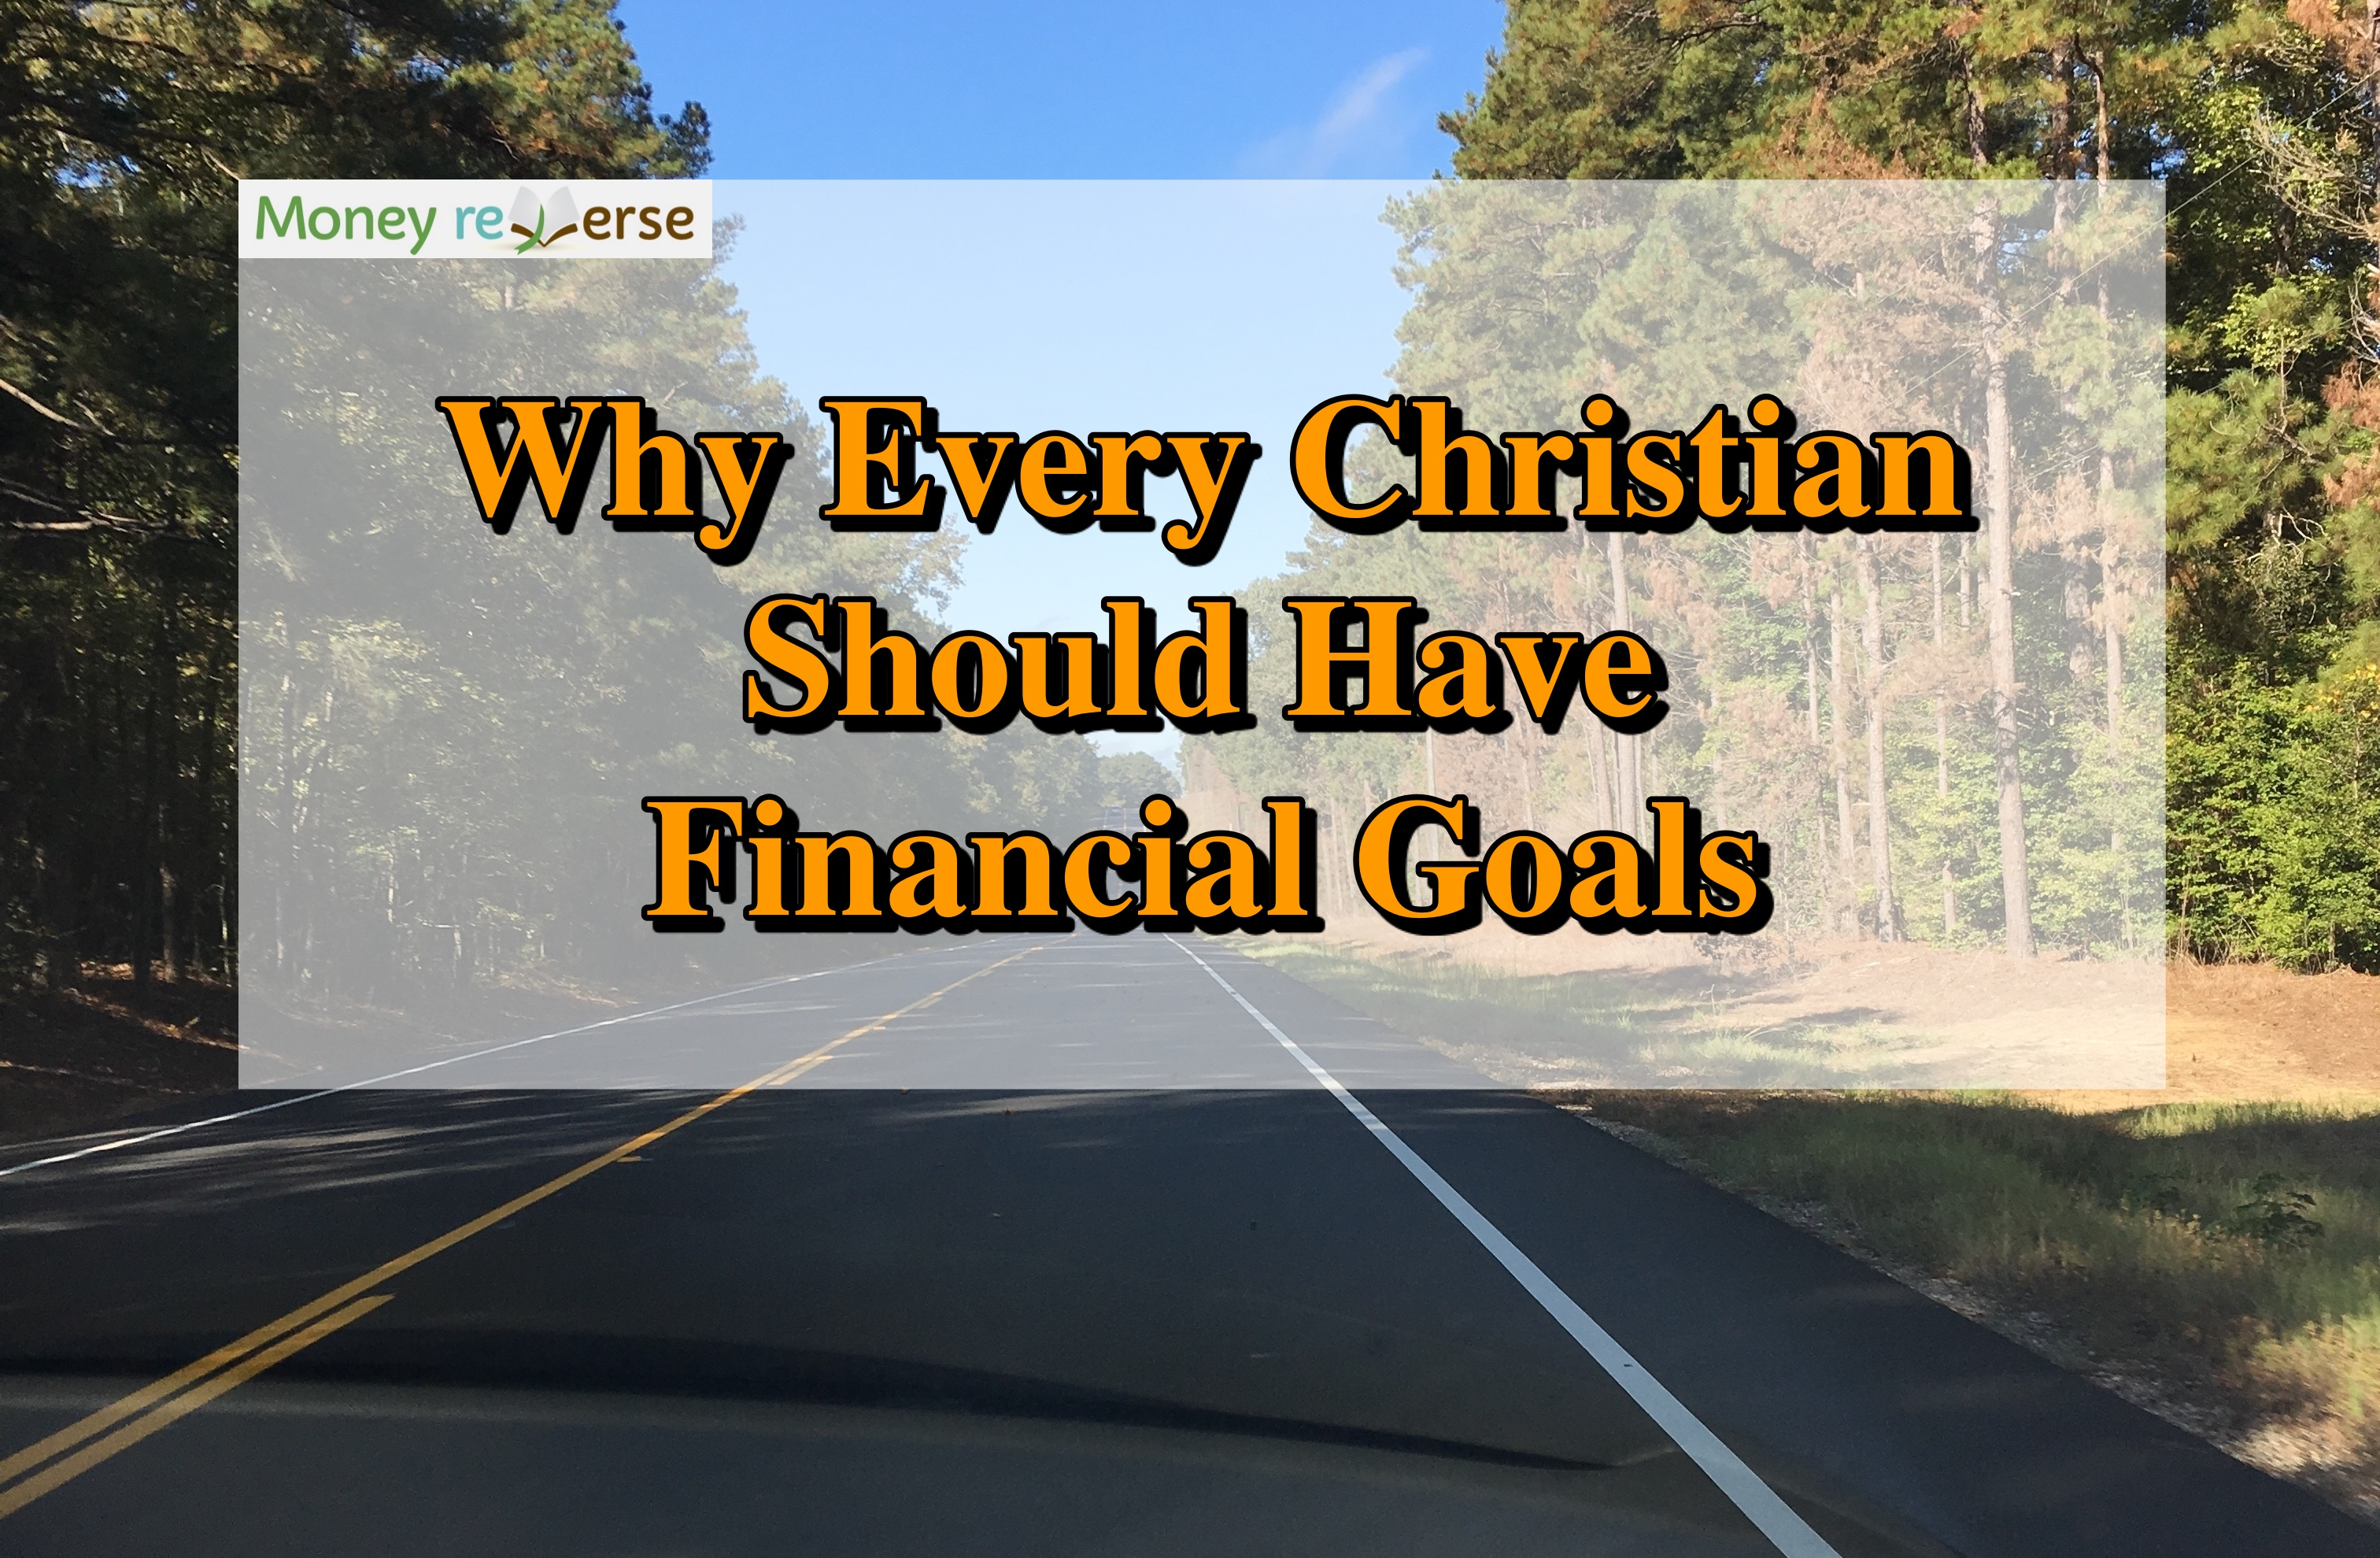 Why every Christian should have financial goals